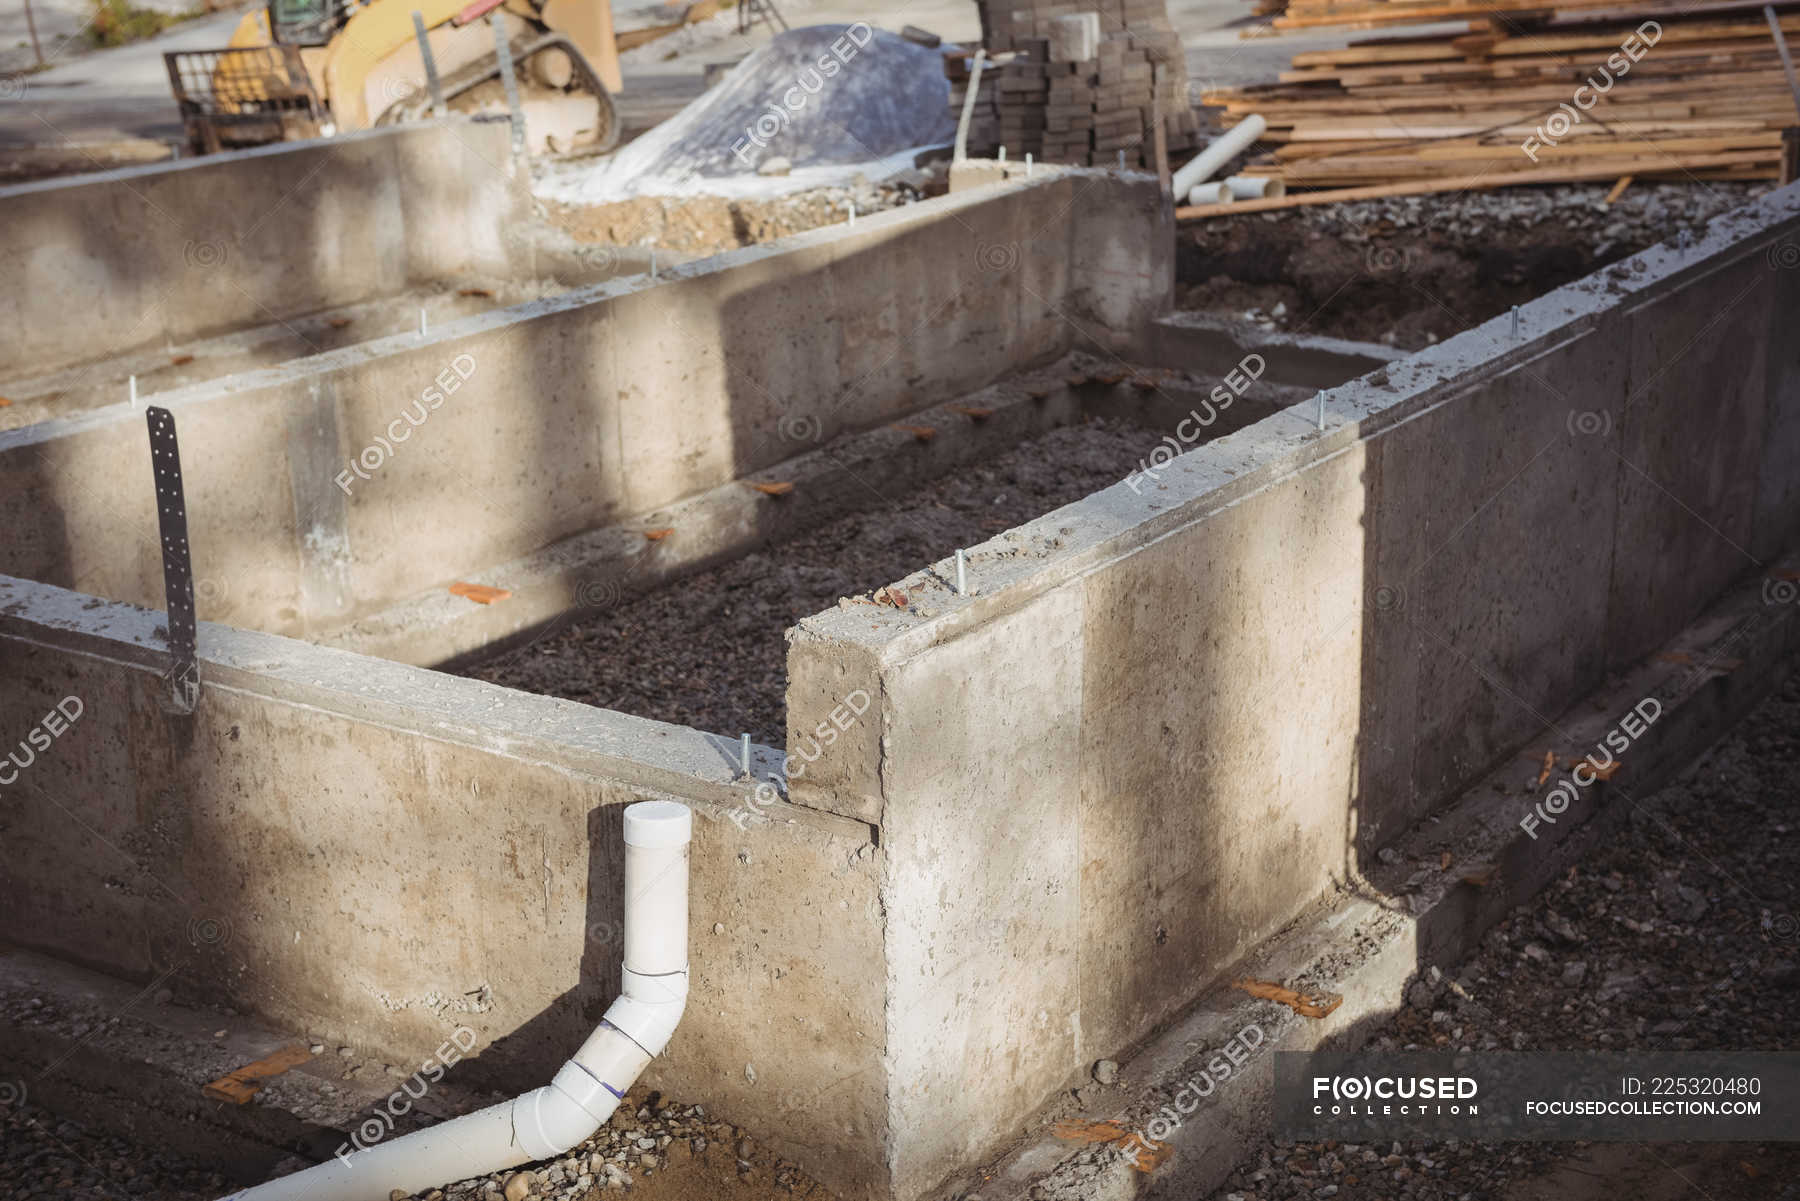 Concrete Foundation And Drainage Pipe At Construction Site Tube Development Stock Photo 225320480